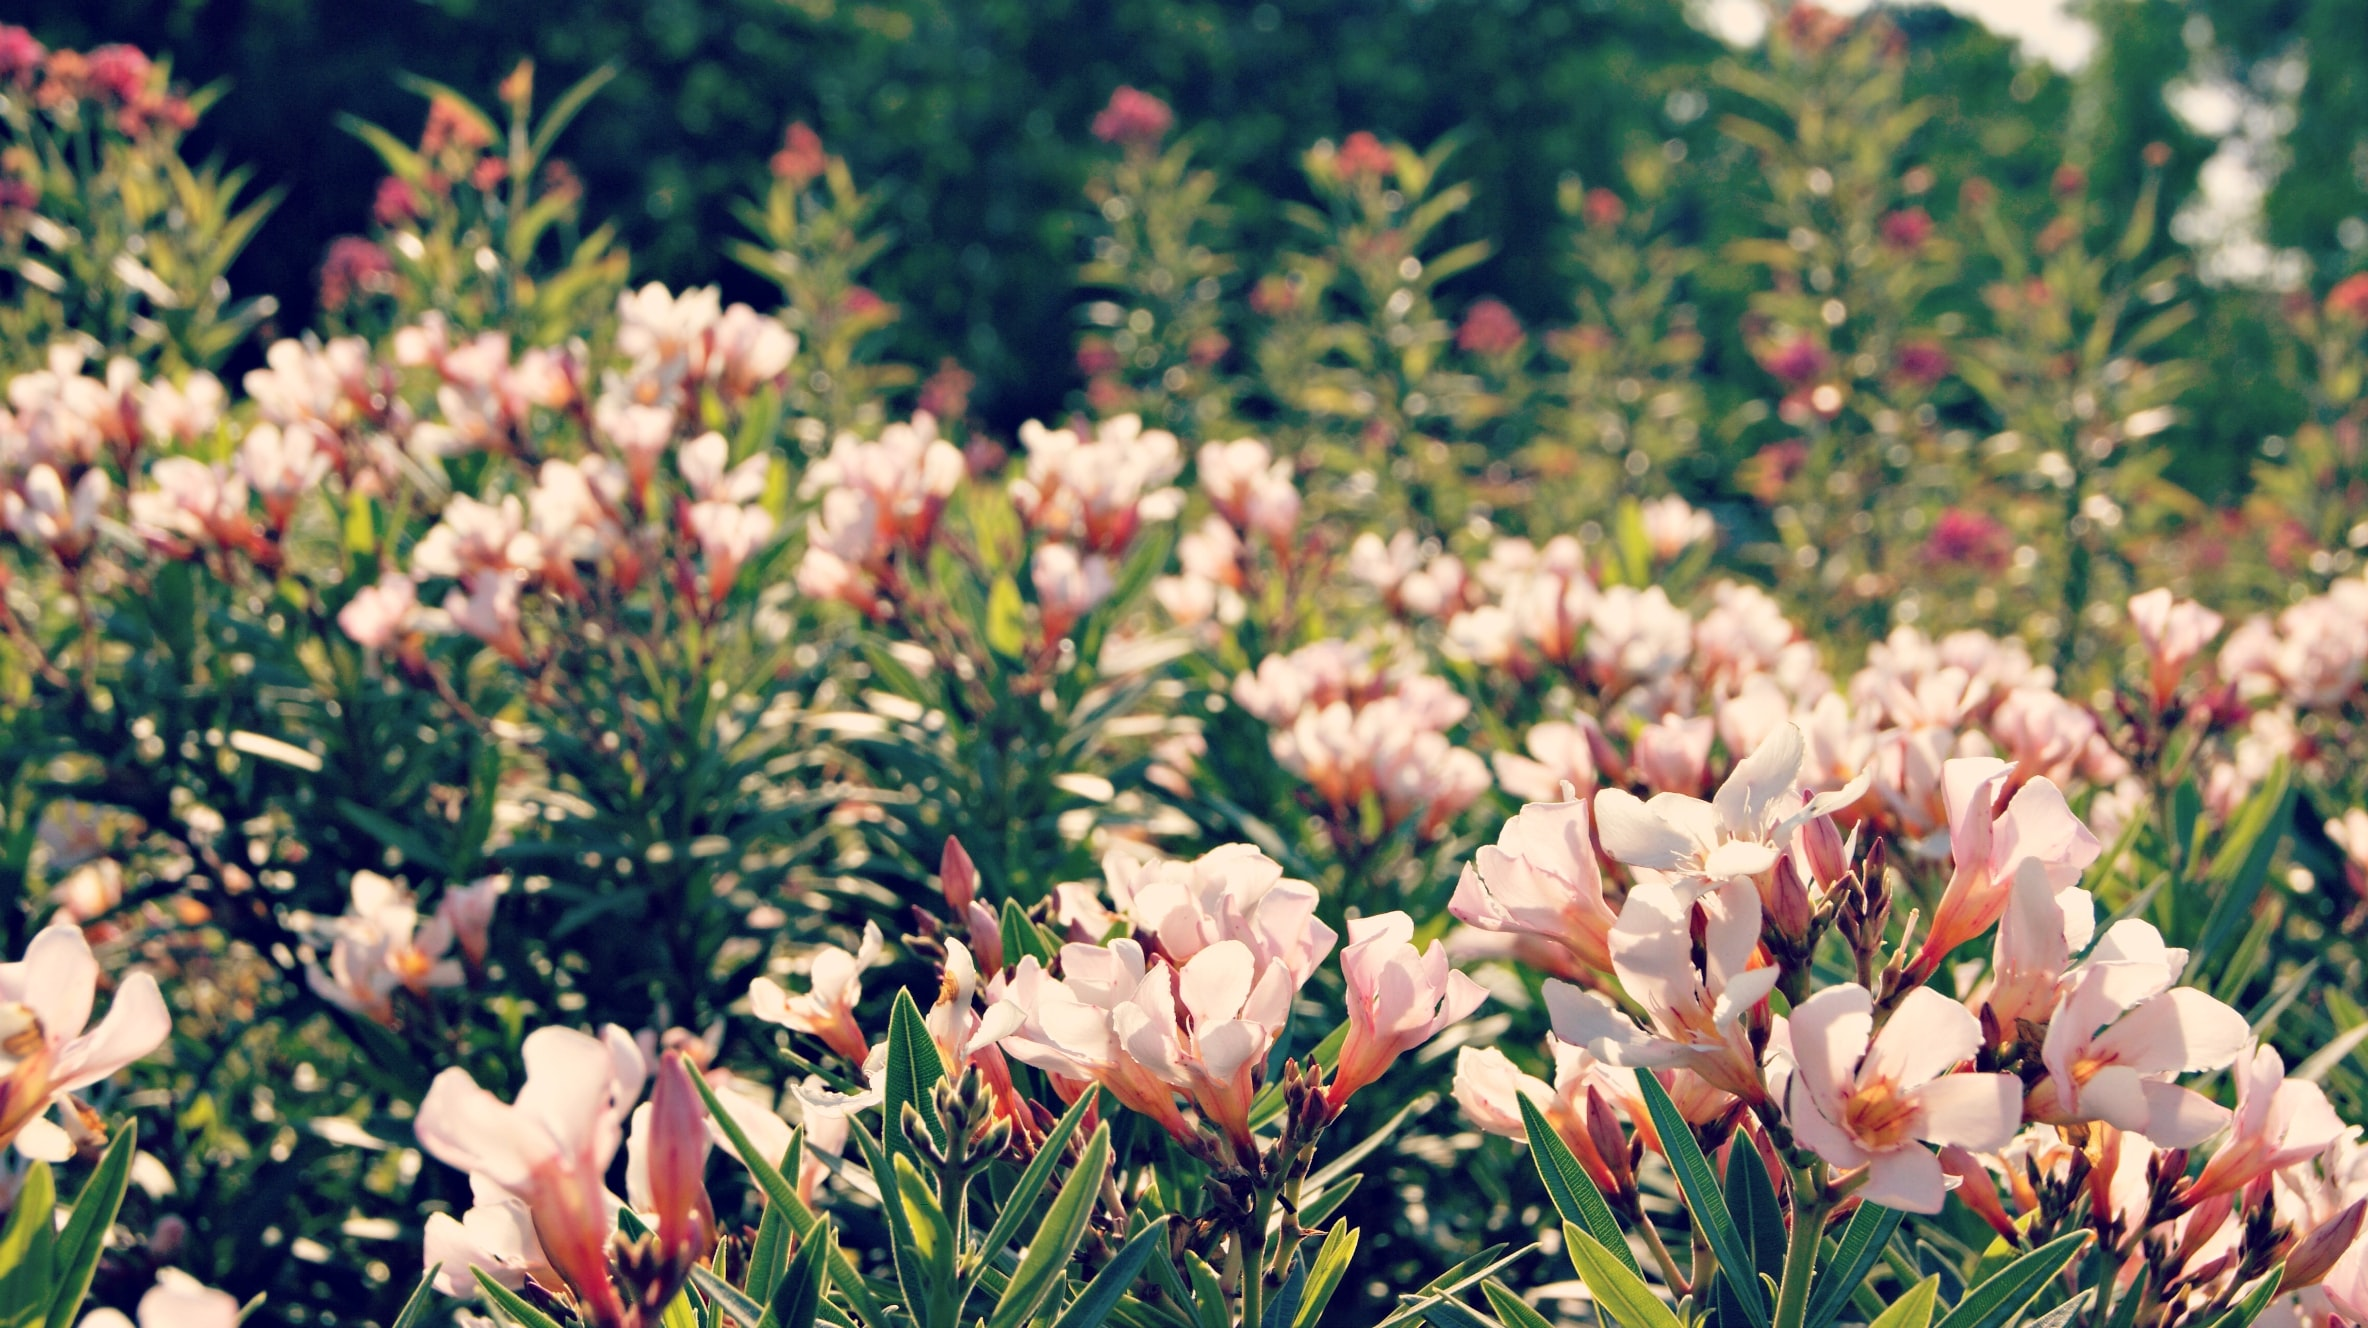 Pale pink flowers in a sunny garden